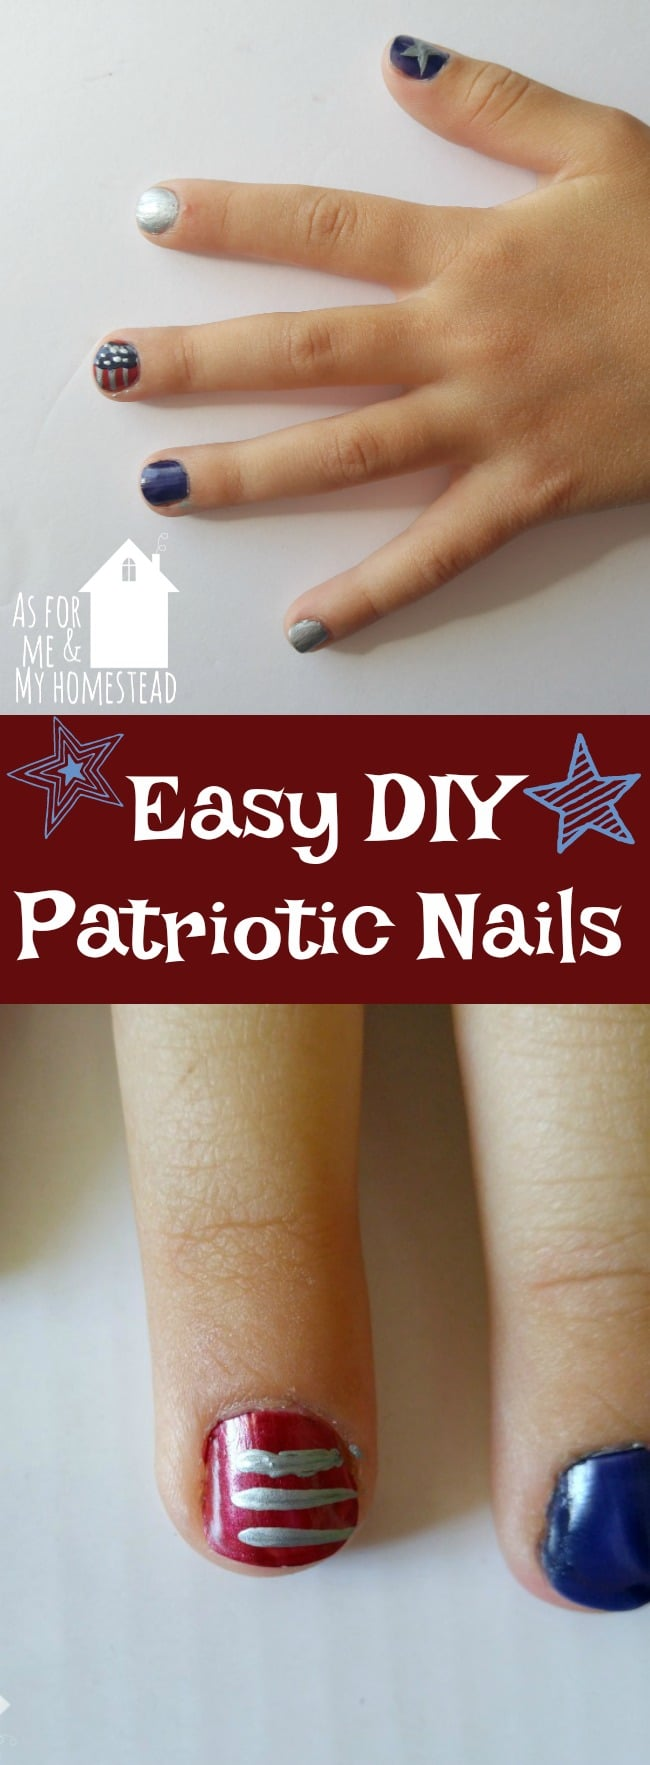 Easy DIY Patriotic Nails